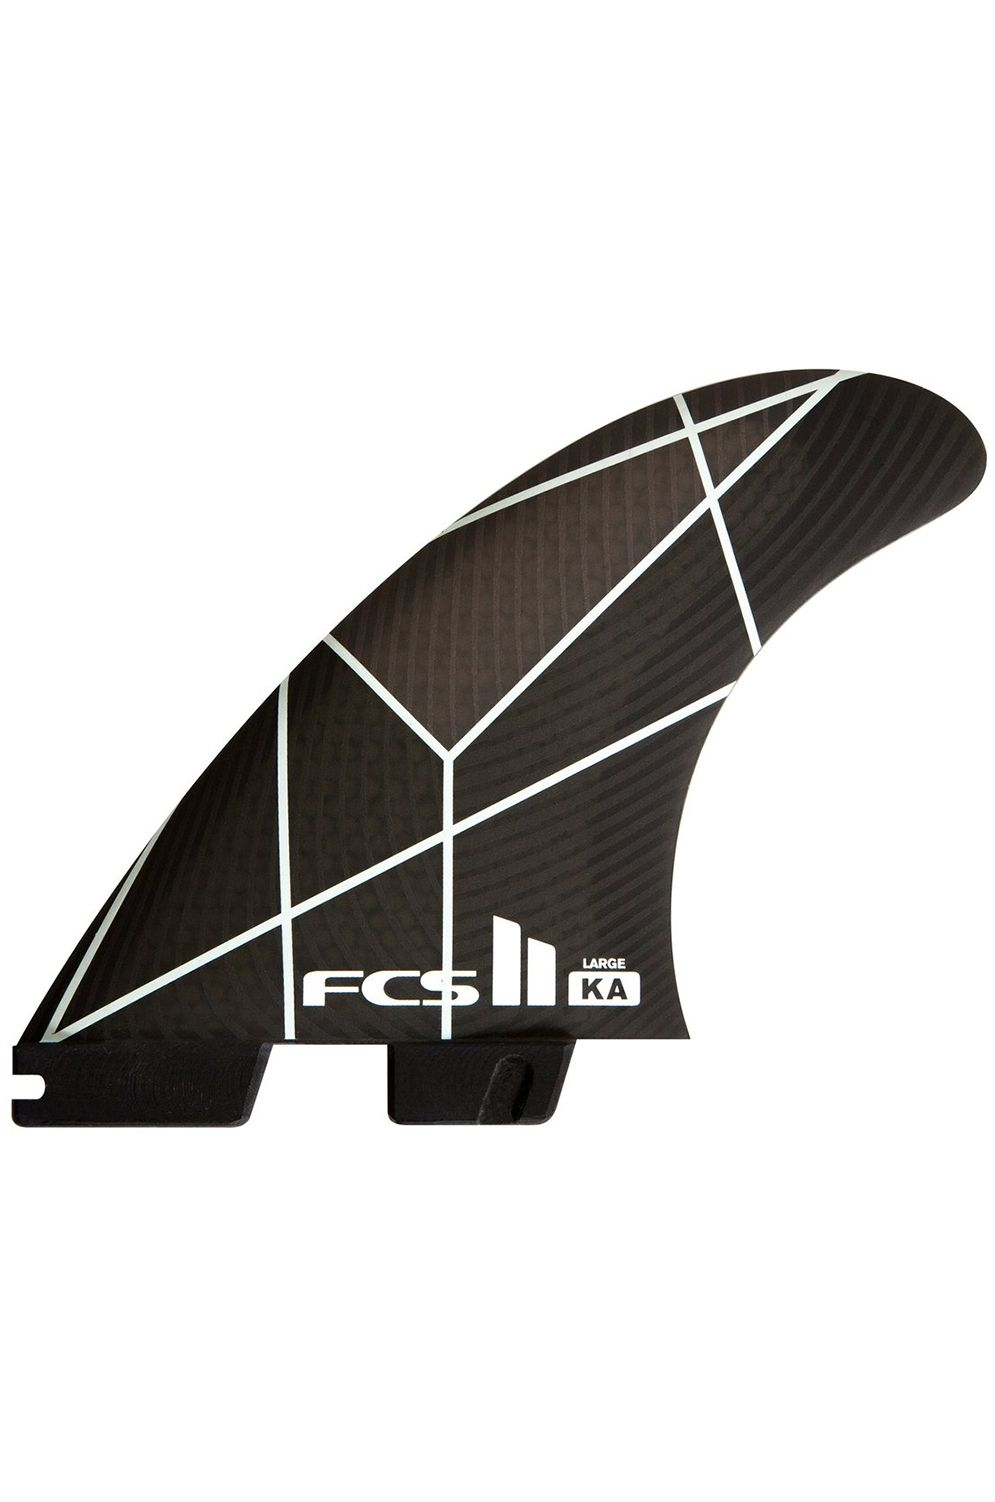 Fcs Fins II KA PC SMALL WHITE/GREY TRI Tri